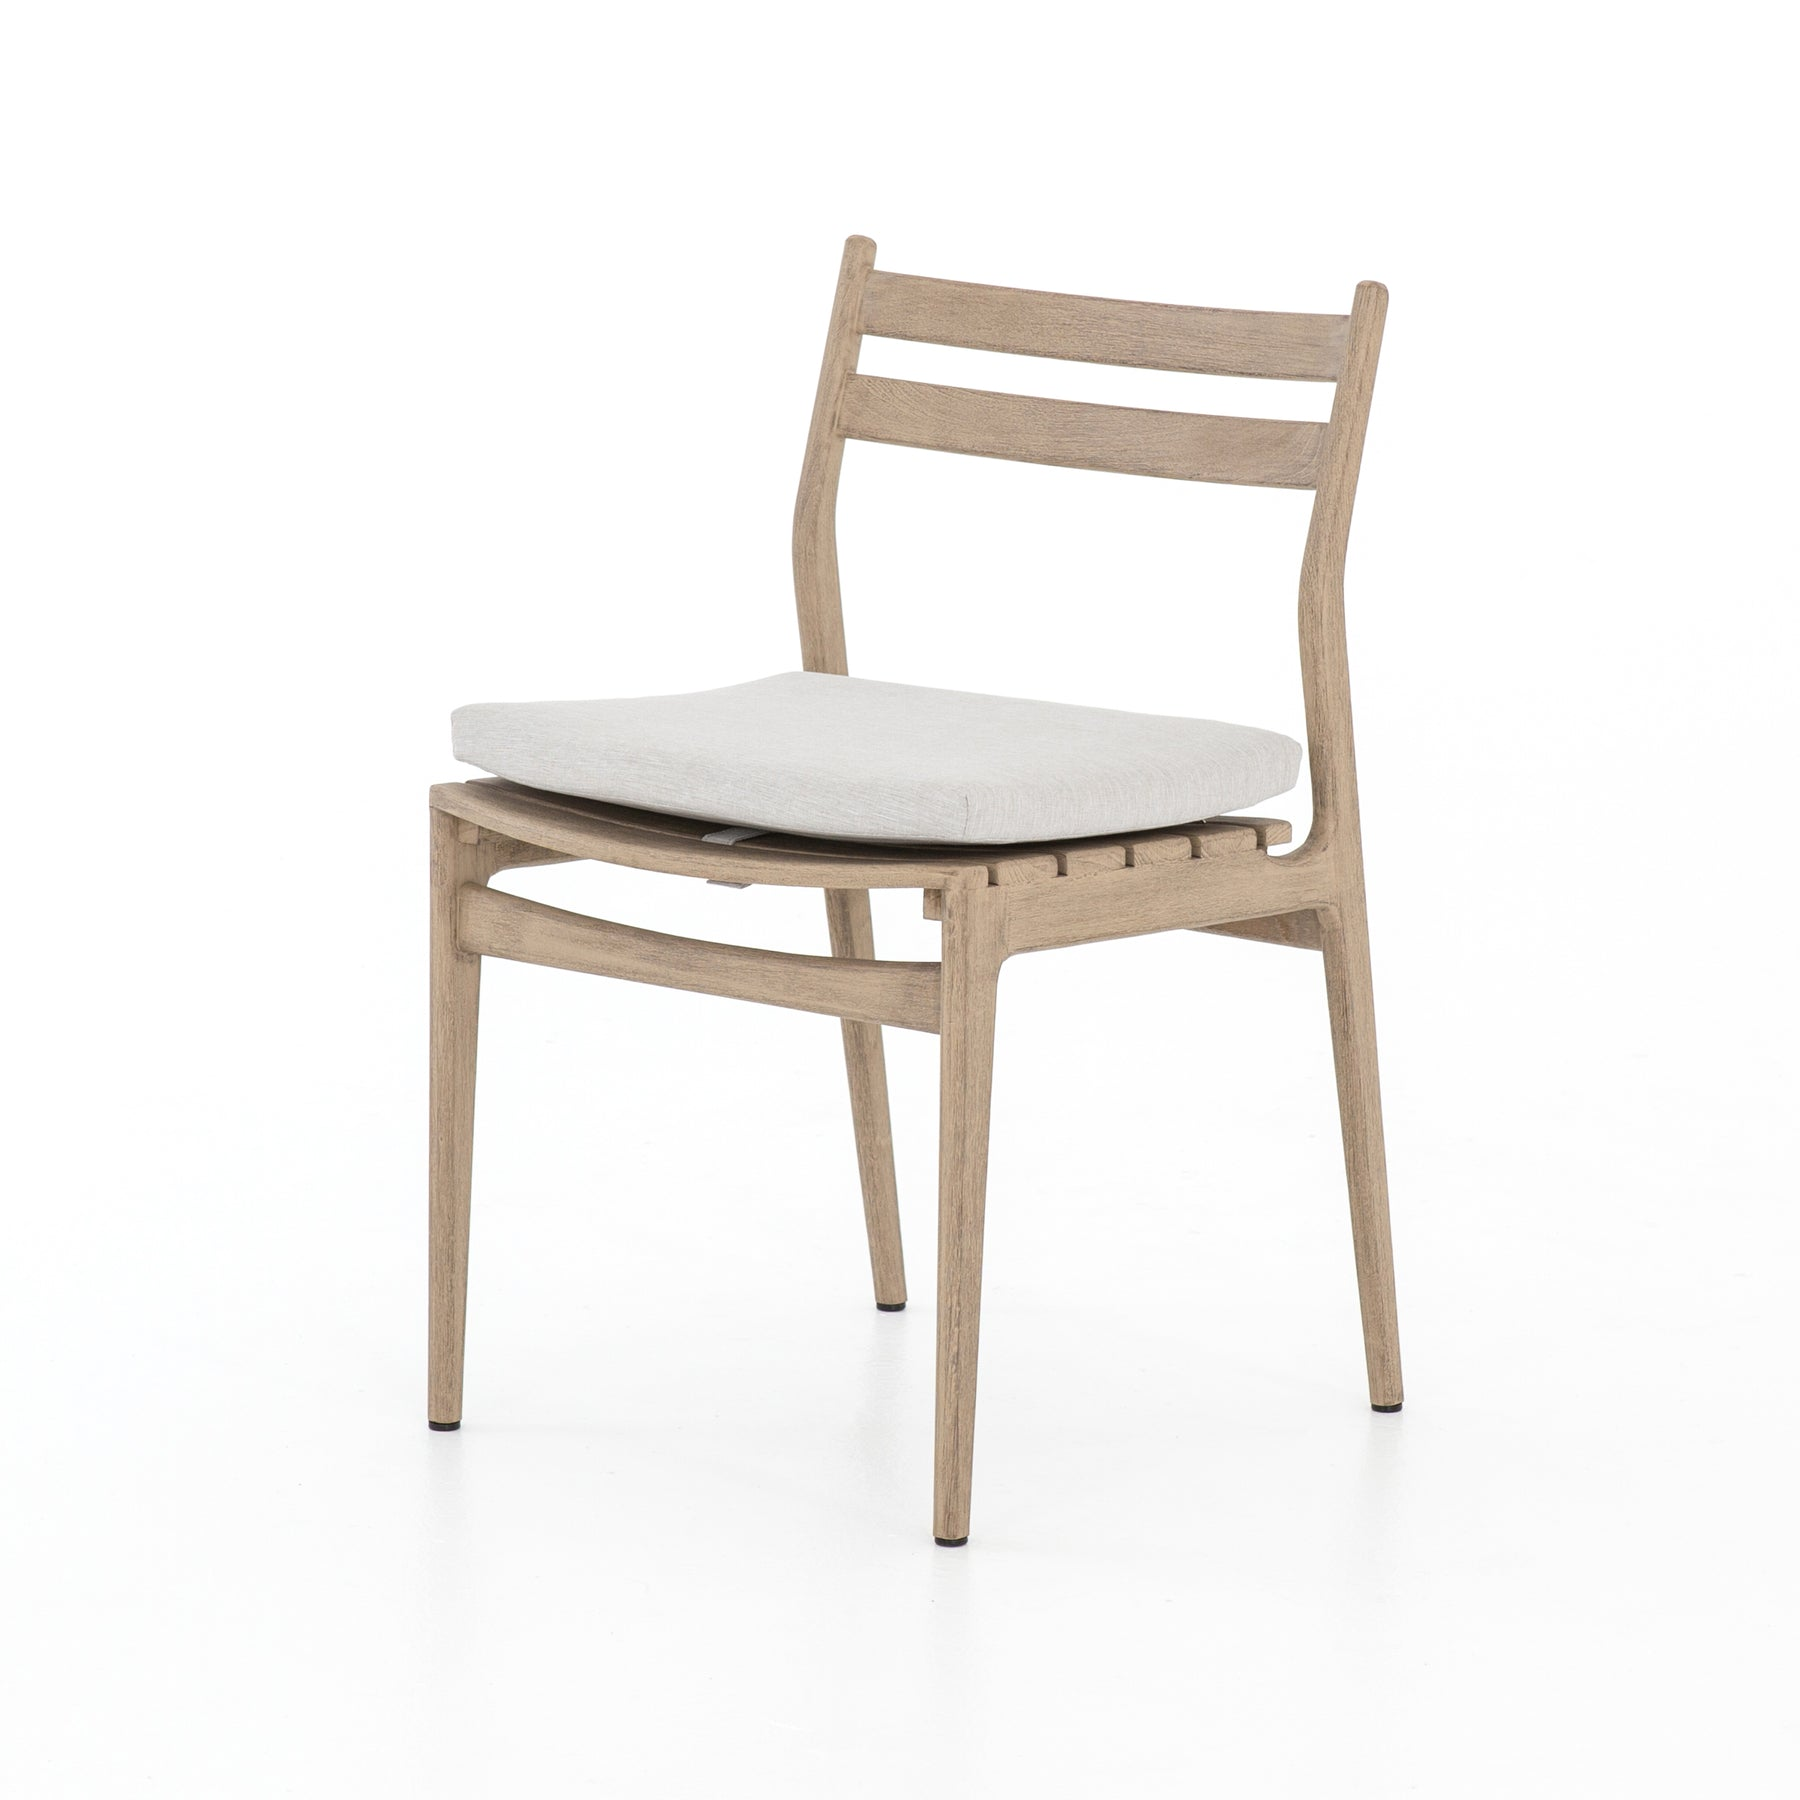 Groovy Anthony Brown Teak Outdoor Dining Chair Bright Modern Pabps2019 Chair Design Images Pabps2019Com